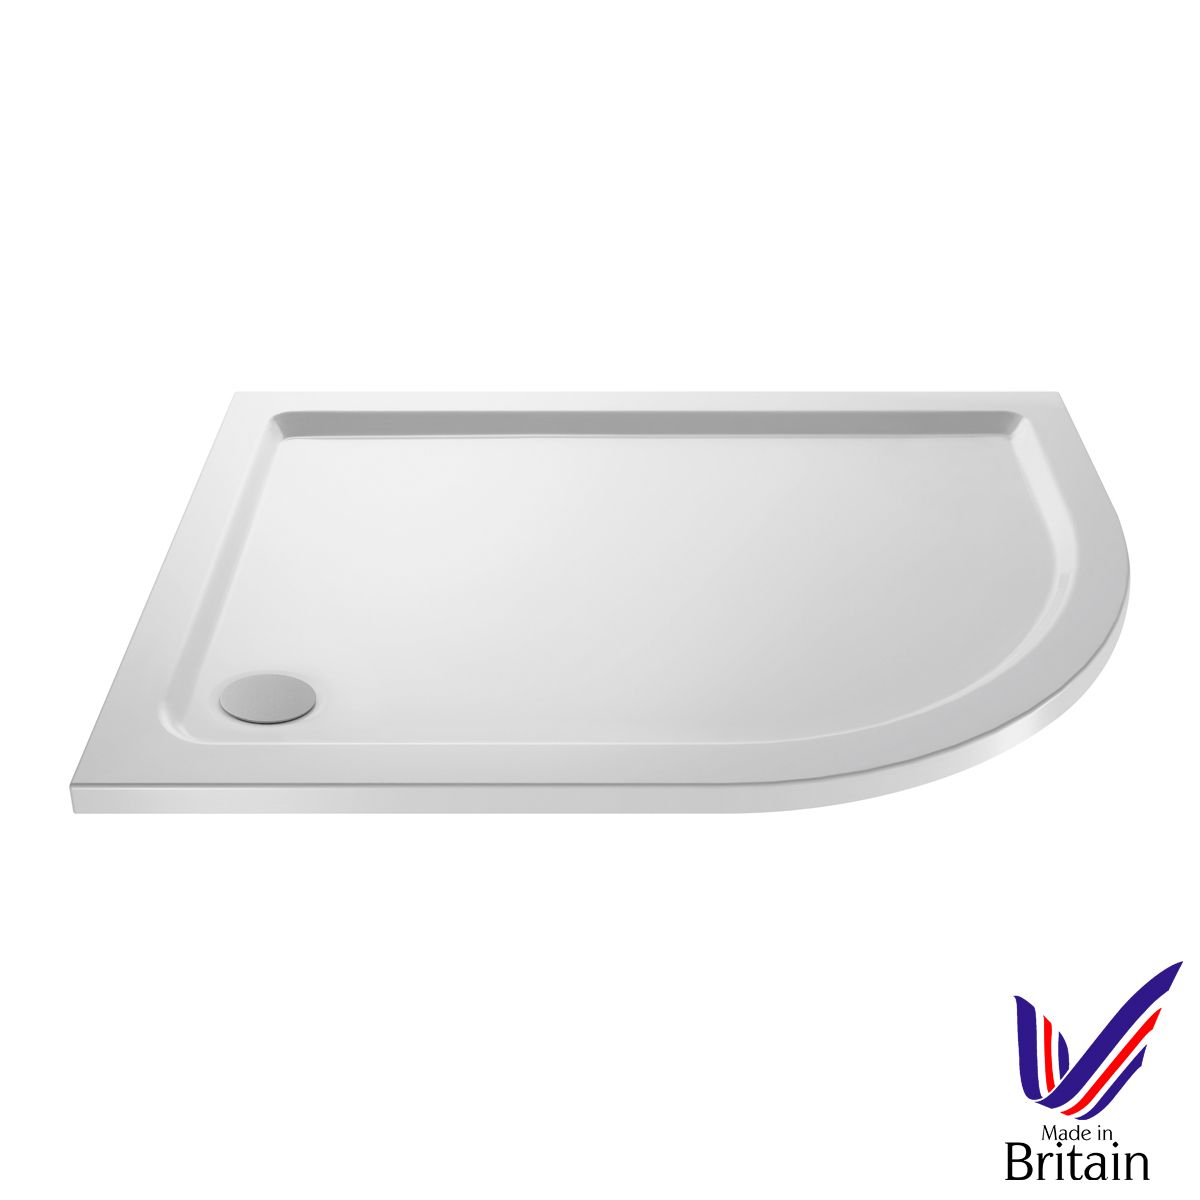 900 x 800 Shower Tray Offset Quadrant Low Profile Right Hand by Pearlstone